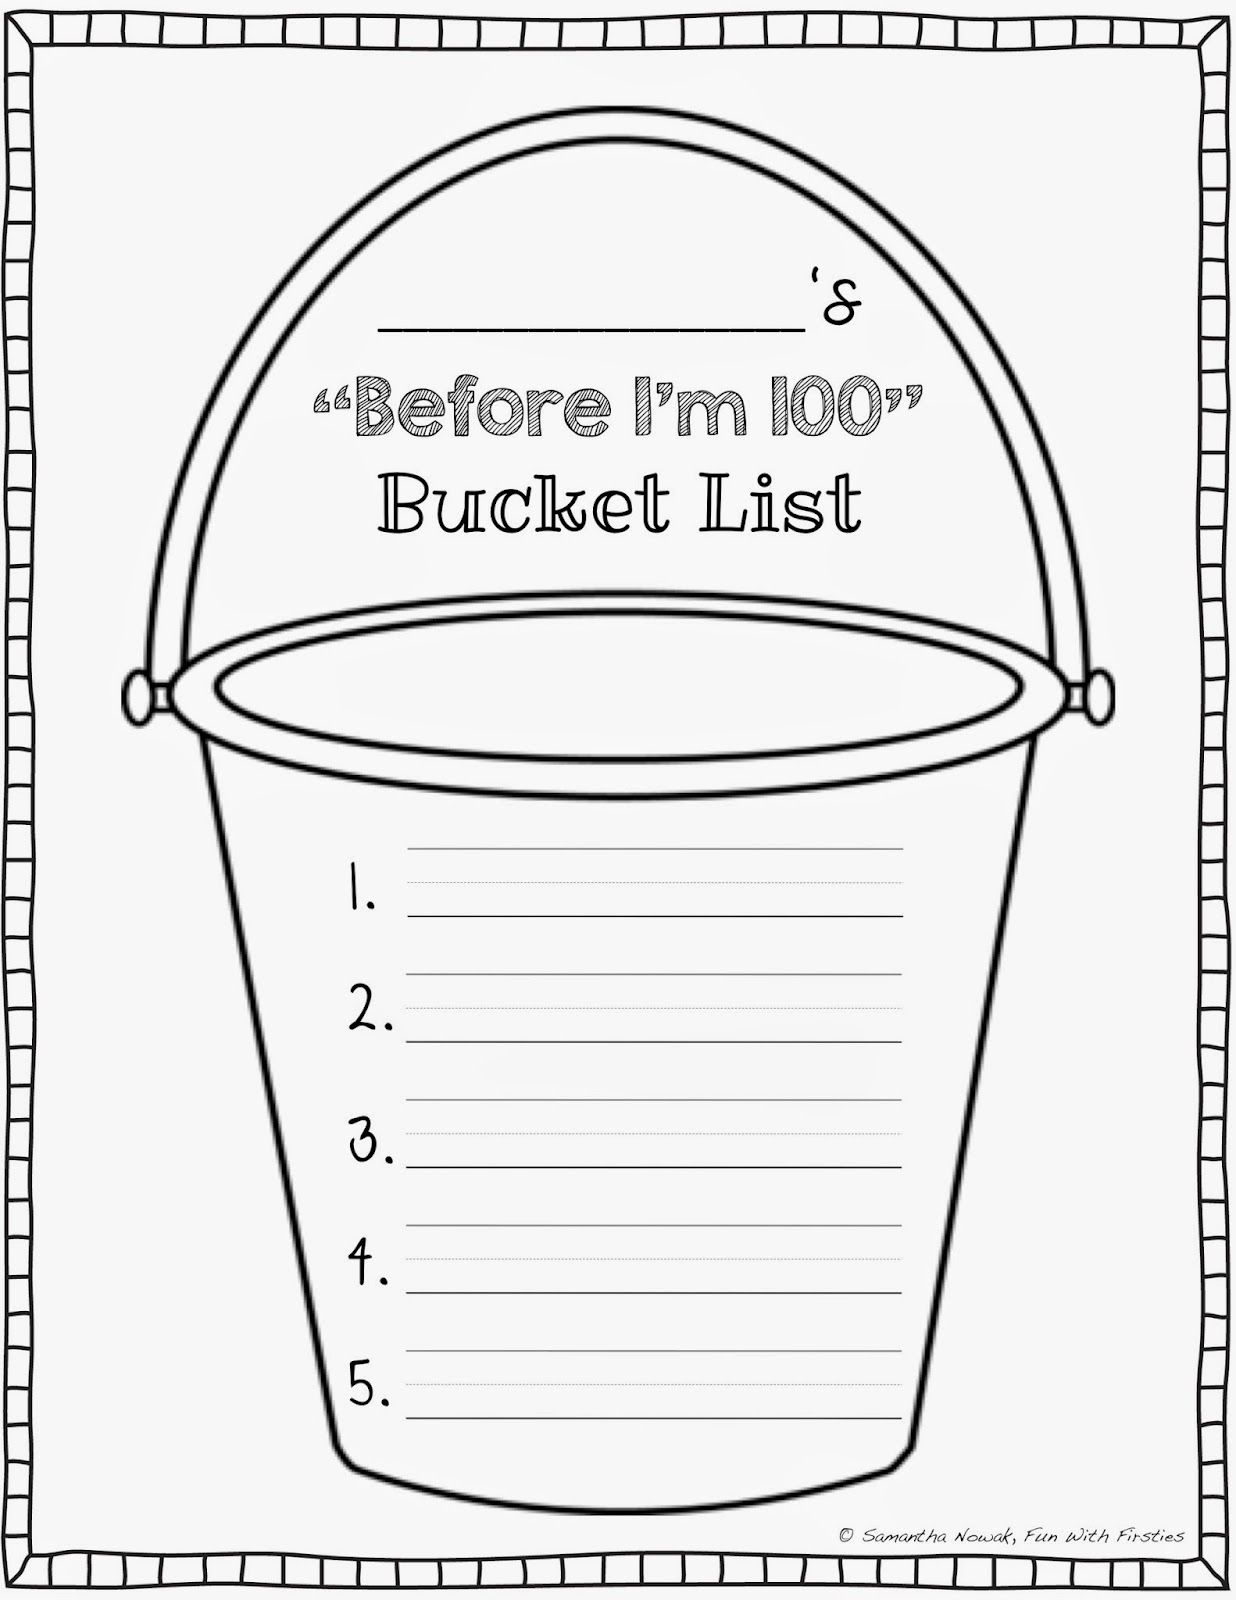 Worksheets 100th Day Of School Worksheets the 100th day of school free worksheets and activities fun with firsties worksheet activity